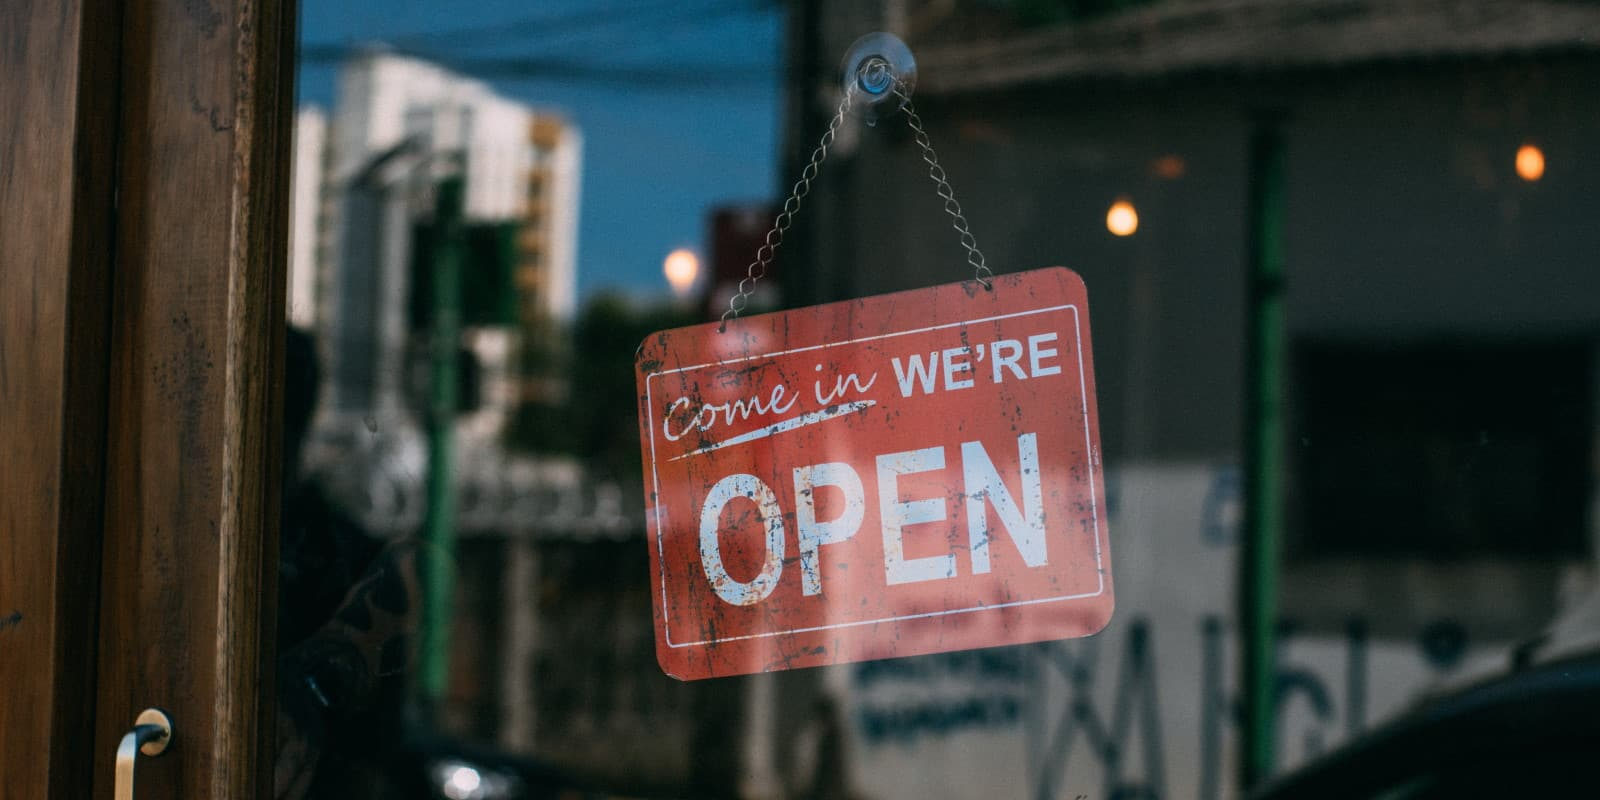 We're open sign hanging in a shopfront window